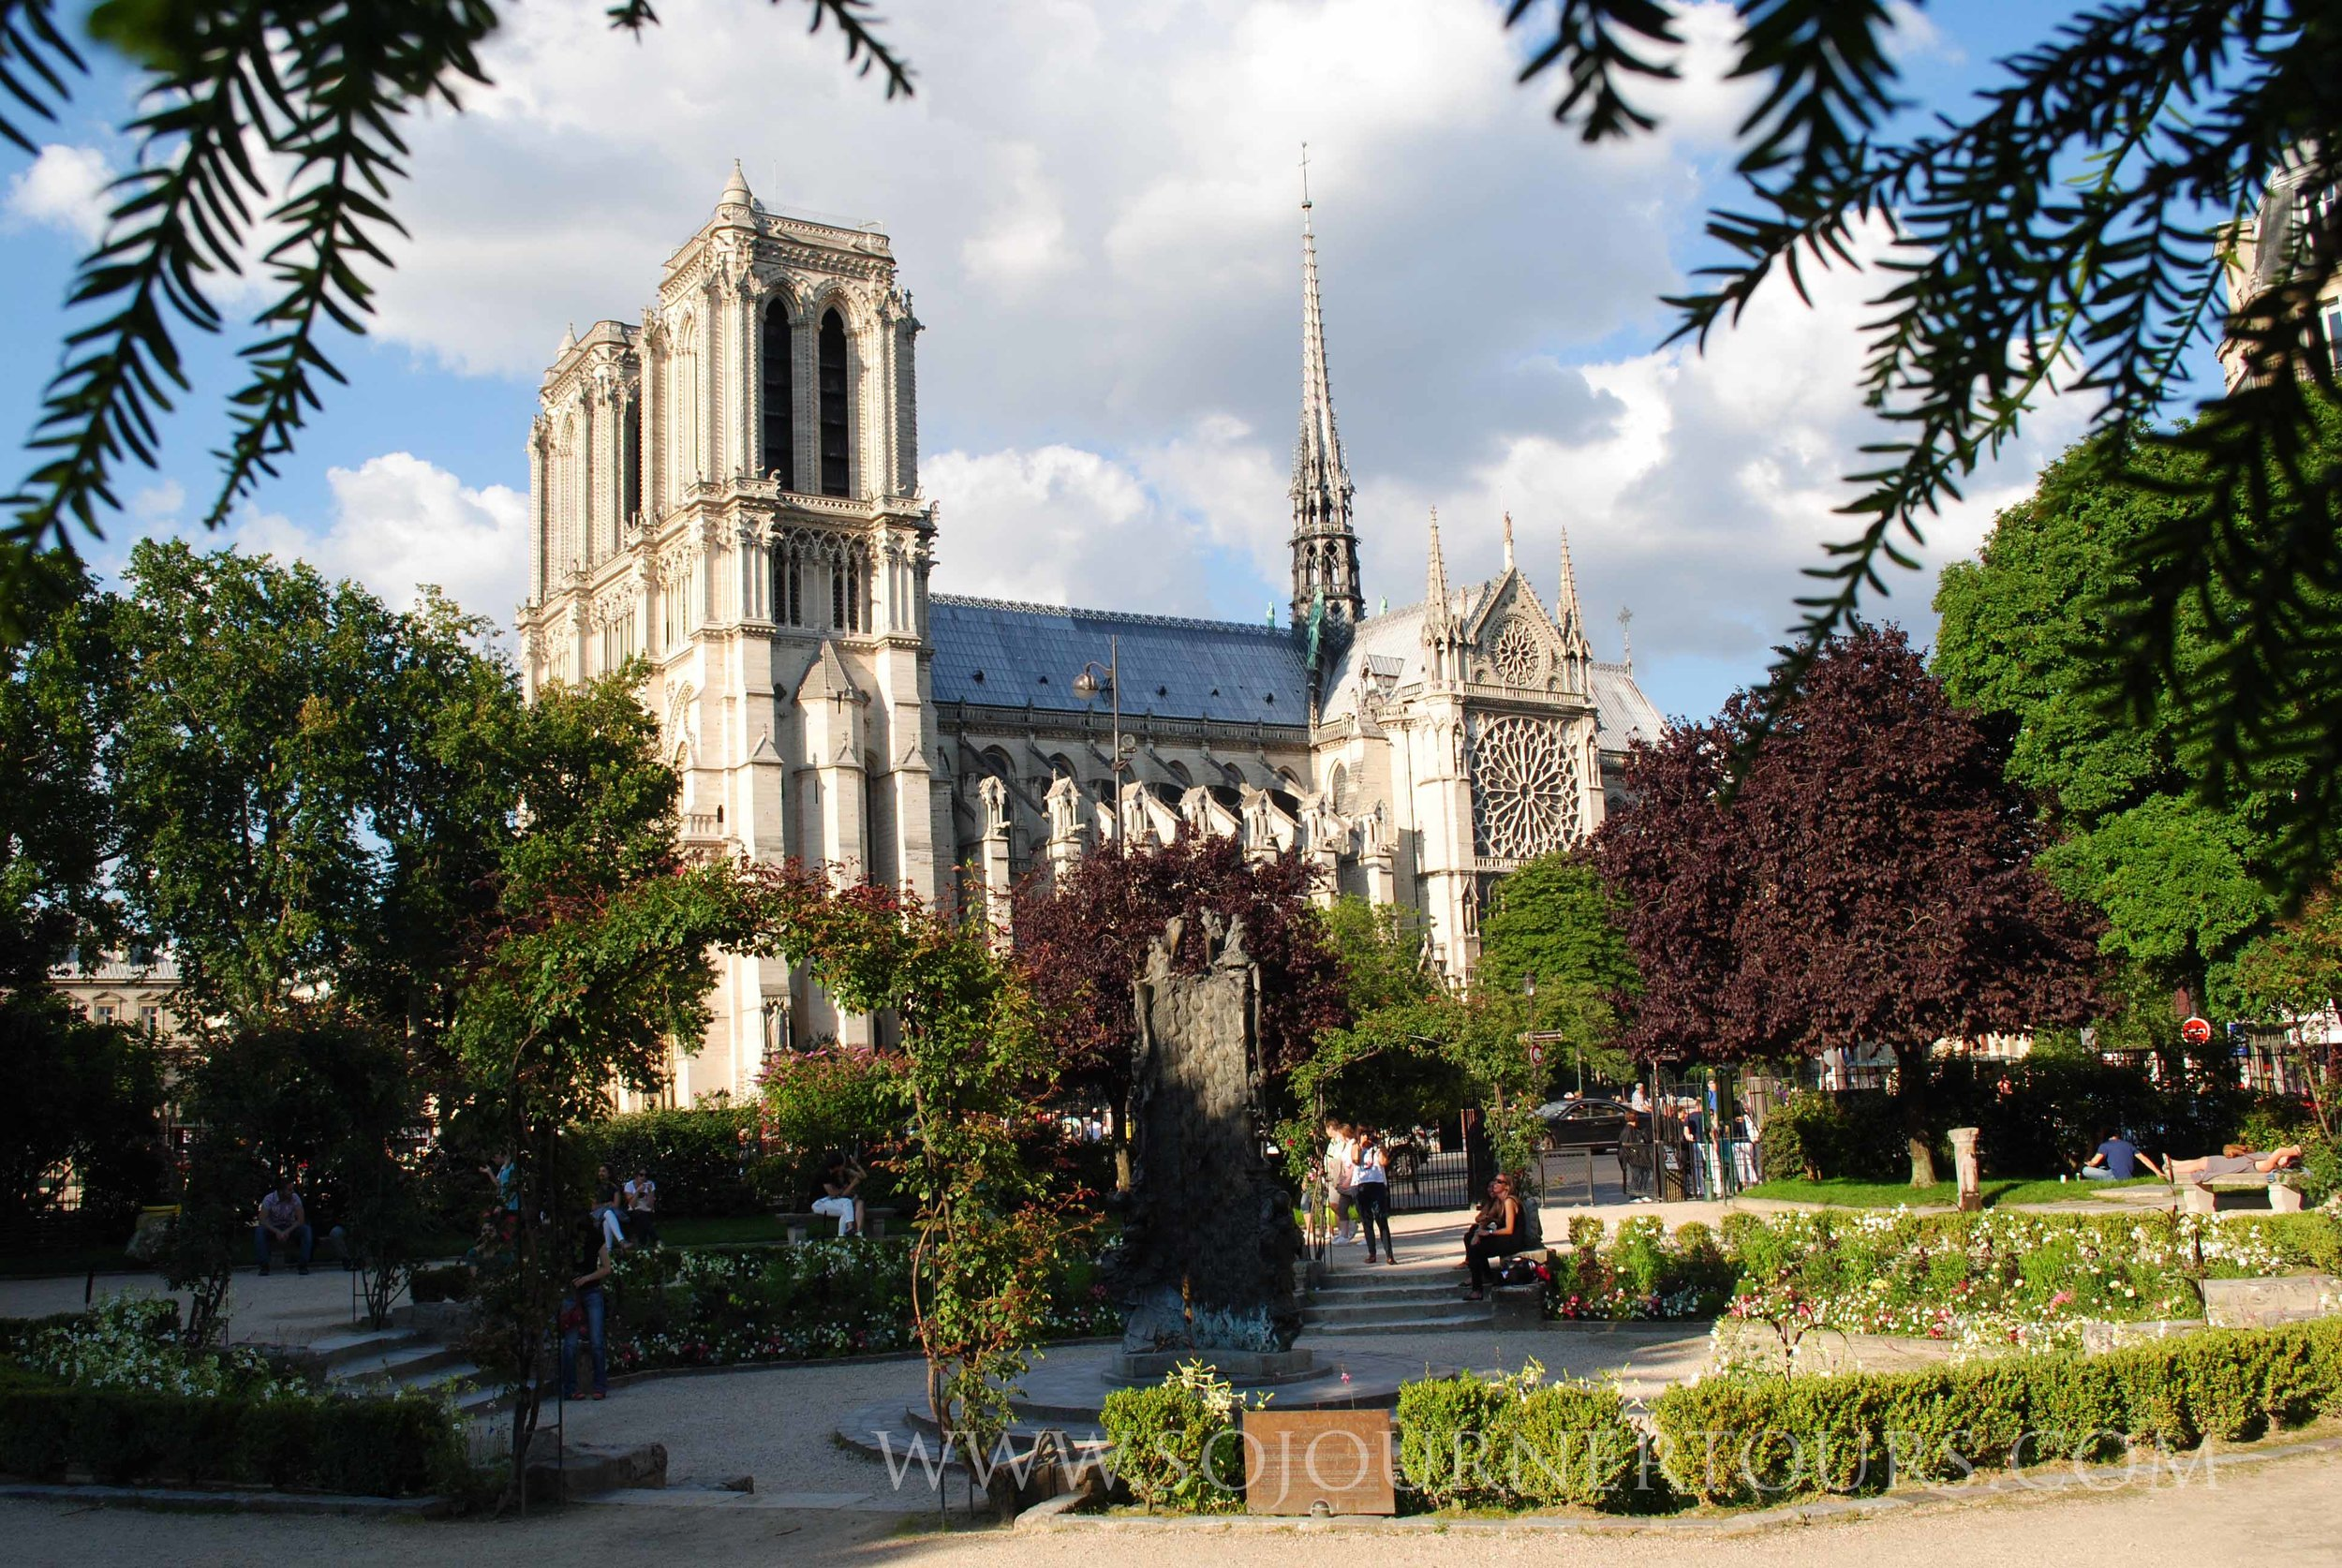 Visiting Notre Dame with Sojourner Tours in Paris